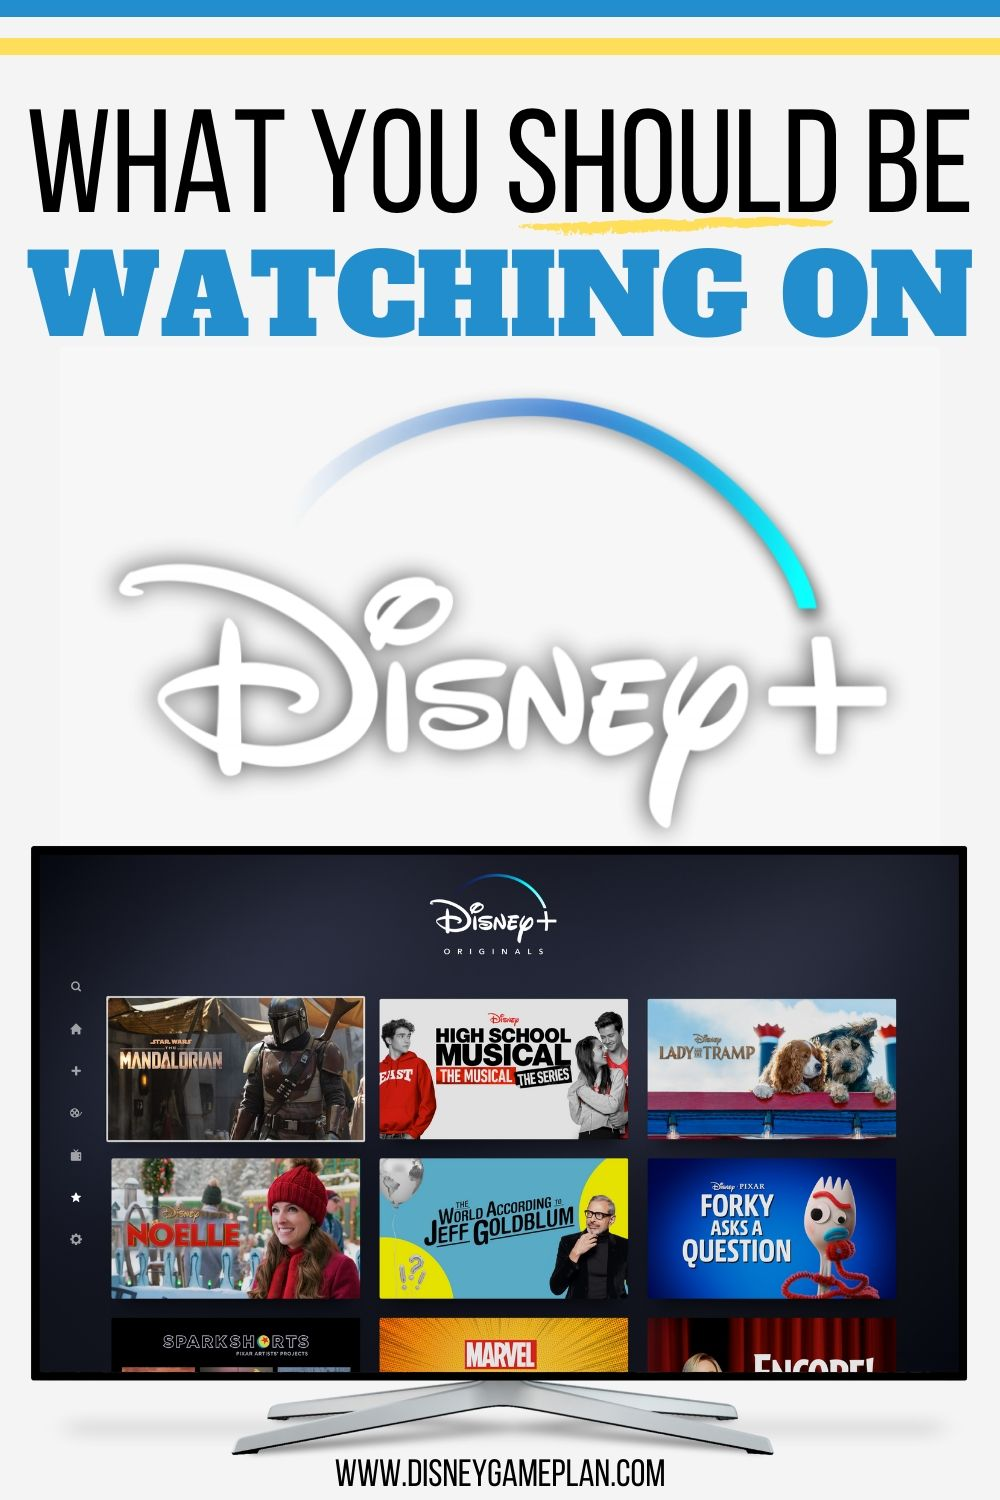 Are you hooked on the new Disney Plus streaming service Yet? Believe it or not, there is some much more to Disney Plus than The Mandalorian and Baby Yoda! Check out this Disney Plus Content worth watching That Totally Rocks. #DisneyPlus #DisneyMovies #themandalorian #babyyoda #disneycontent #muppets #nationalgeographic